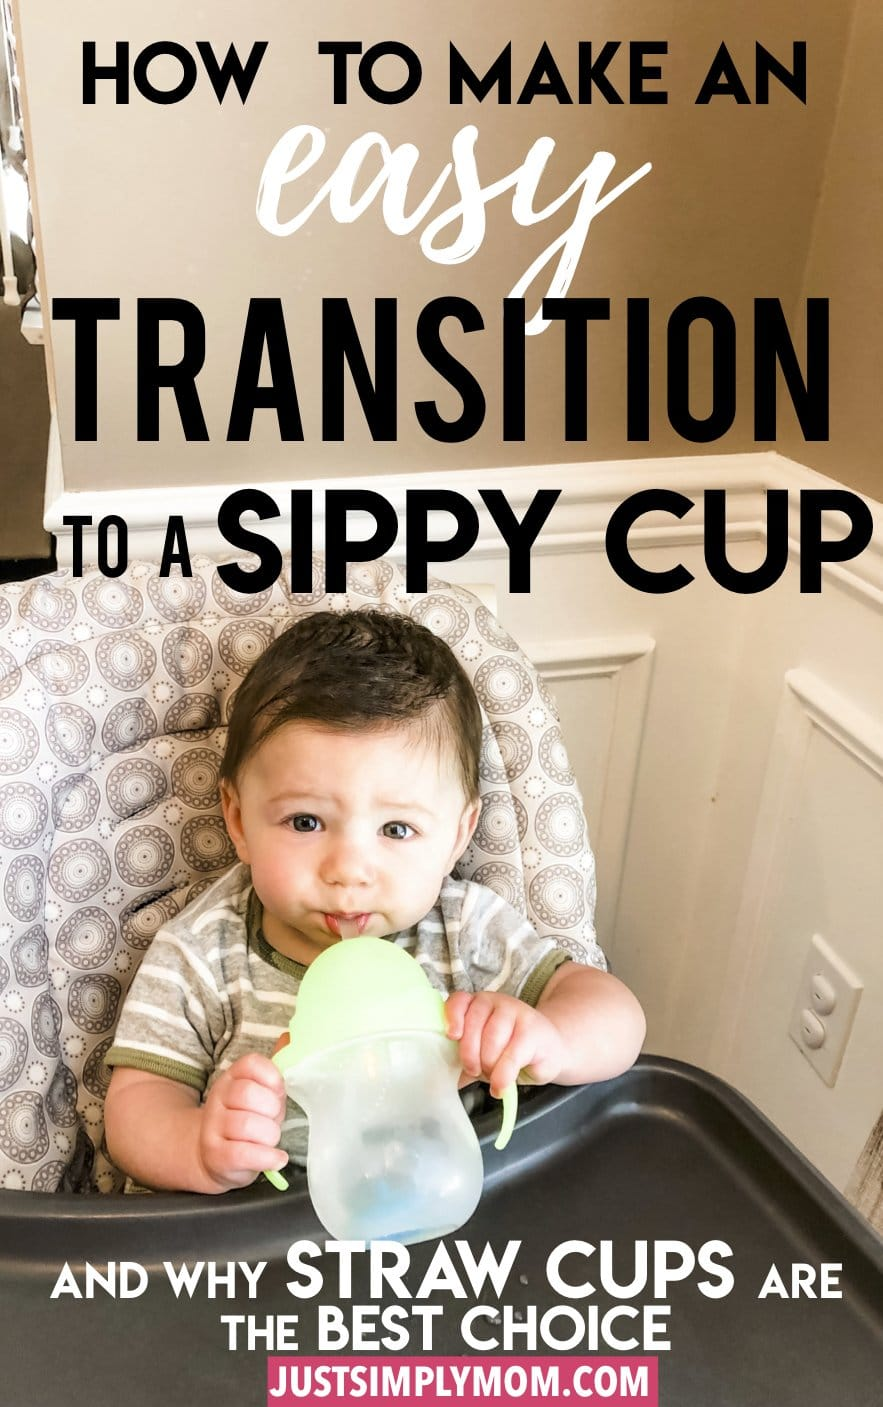 The Best Way to Transition Baby to a Sippy or Straw Cup